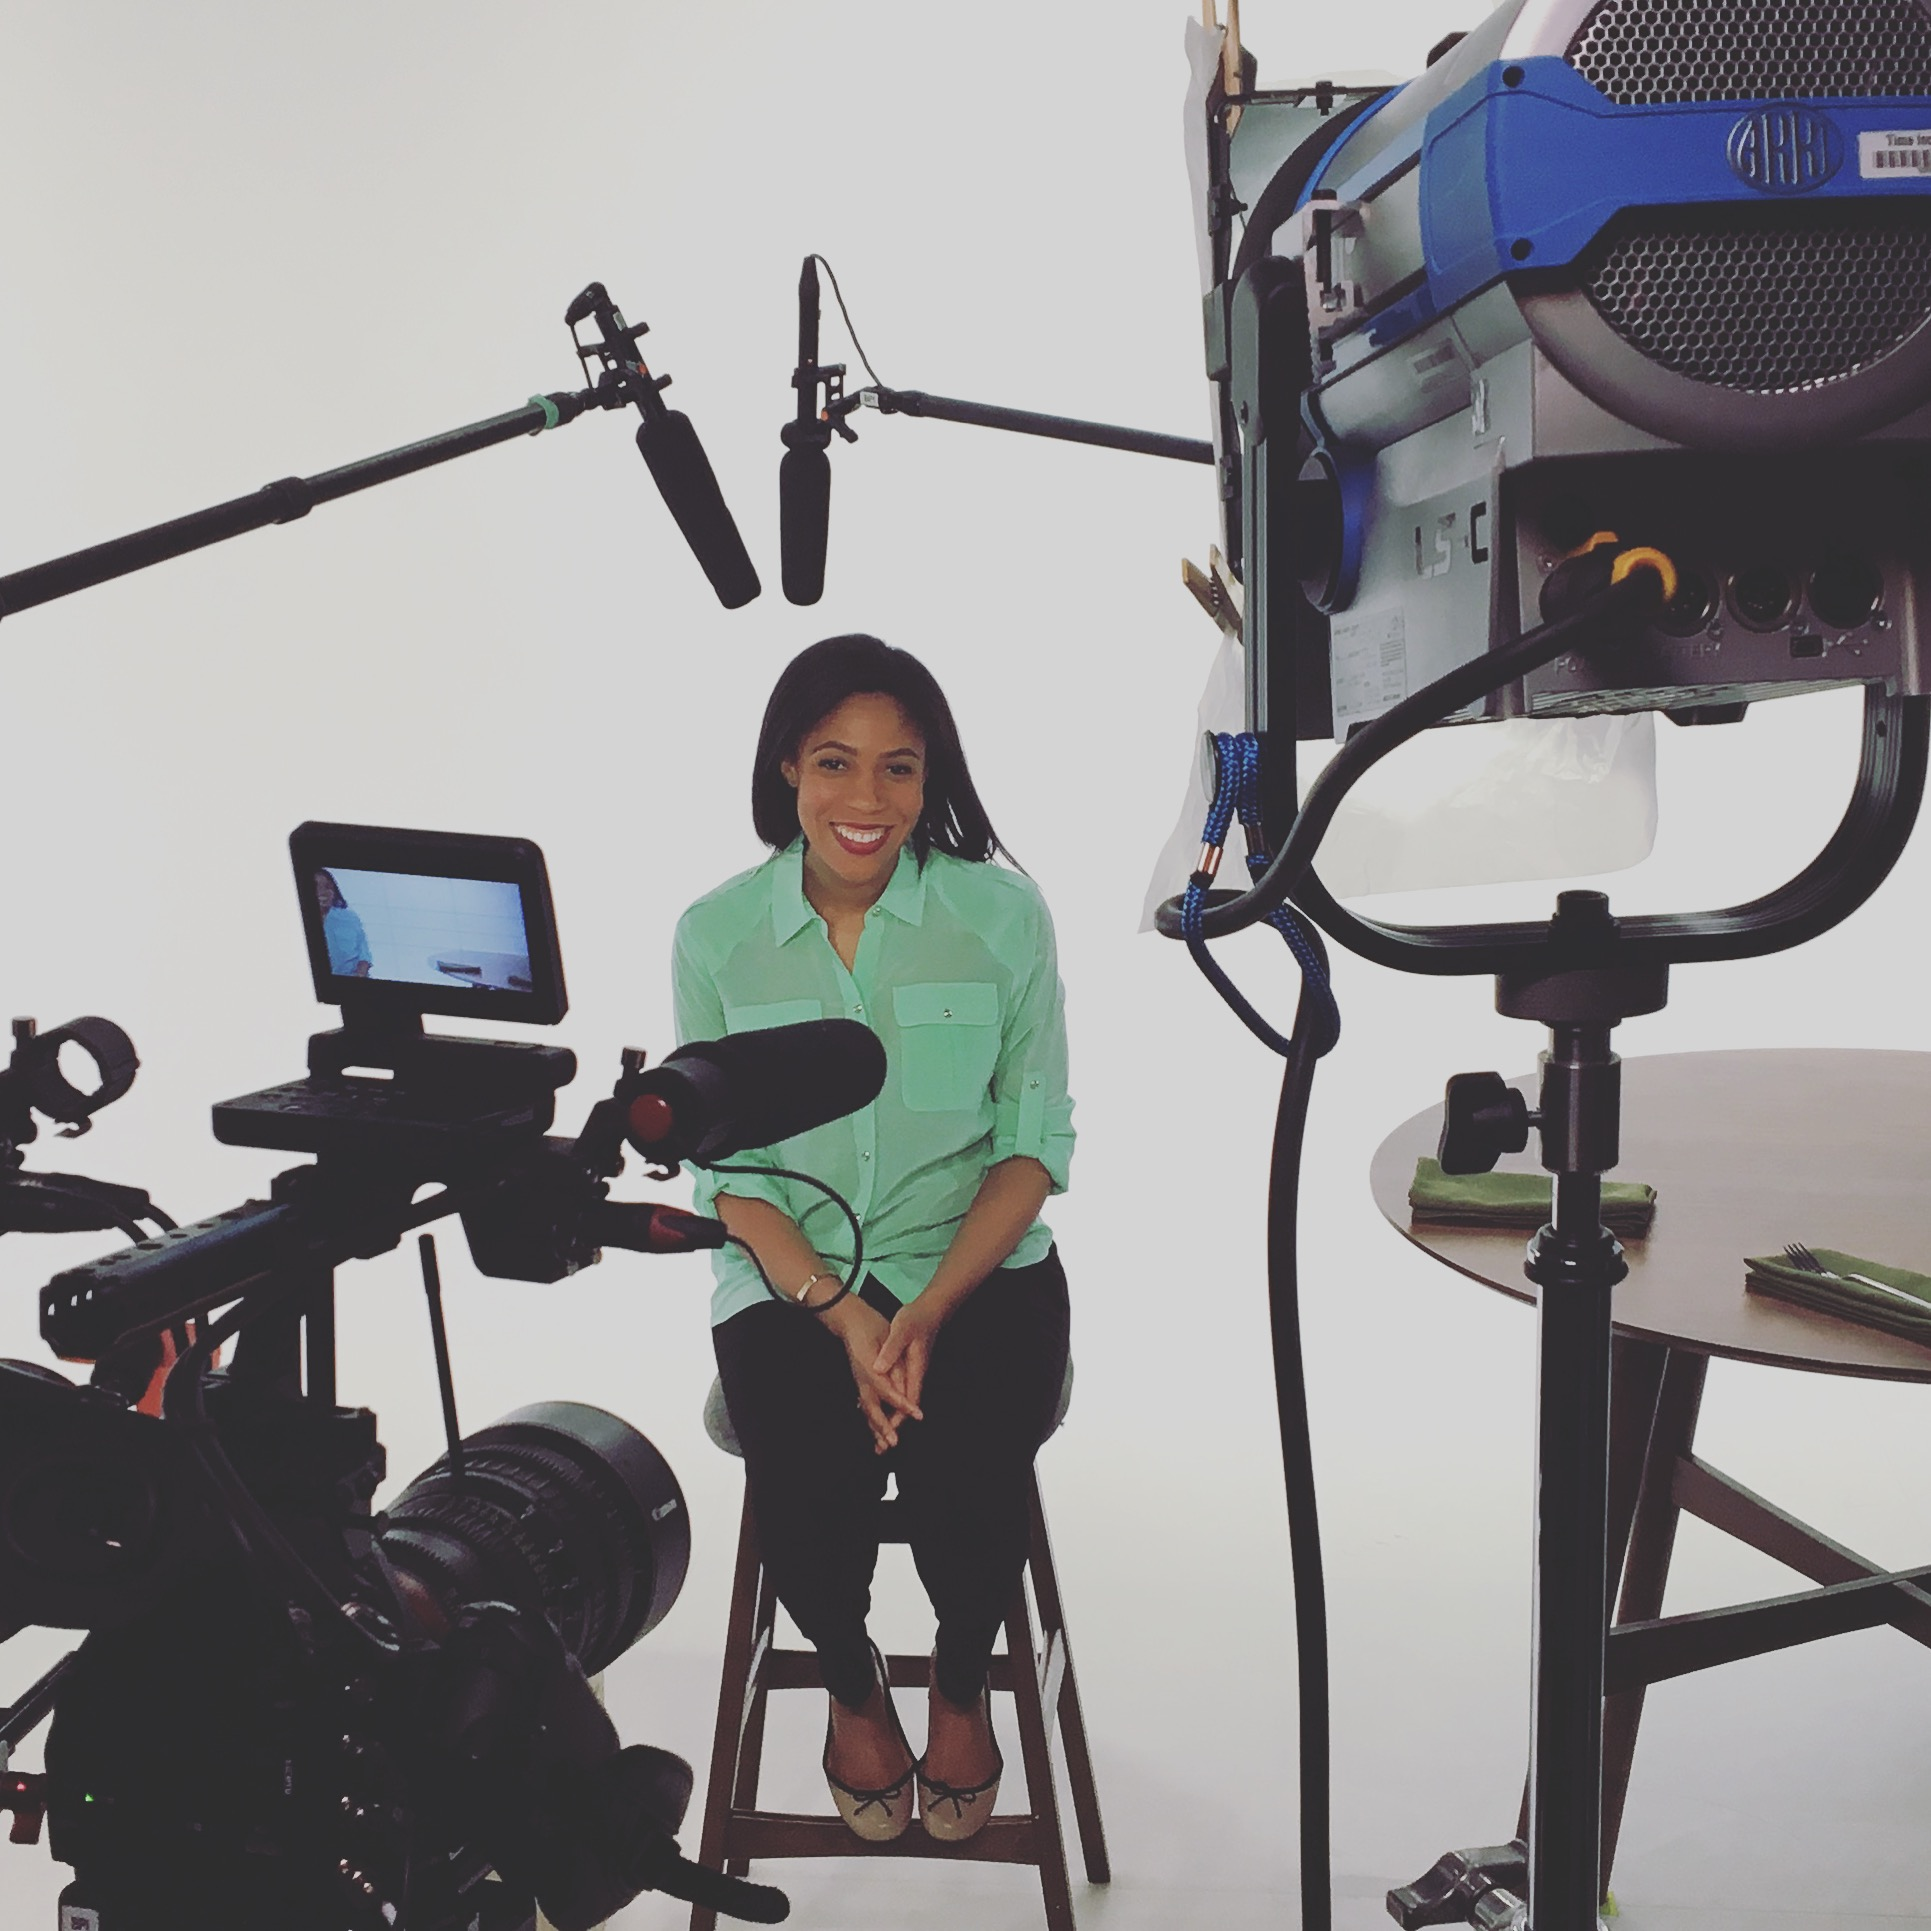 Behind the scenes of filming an internet an promo.